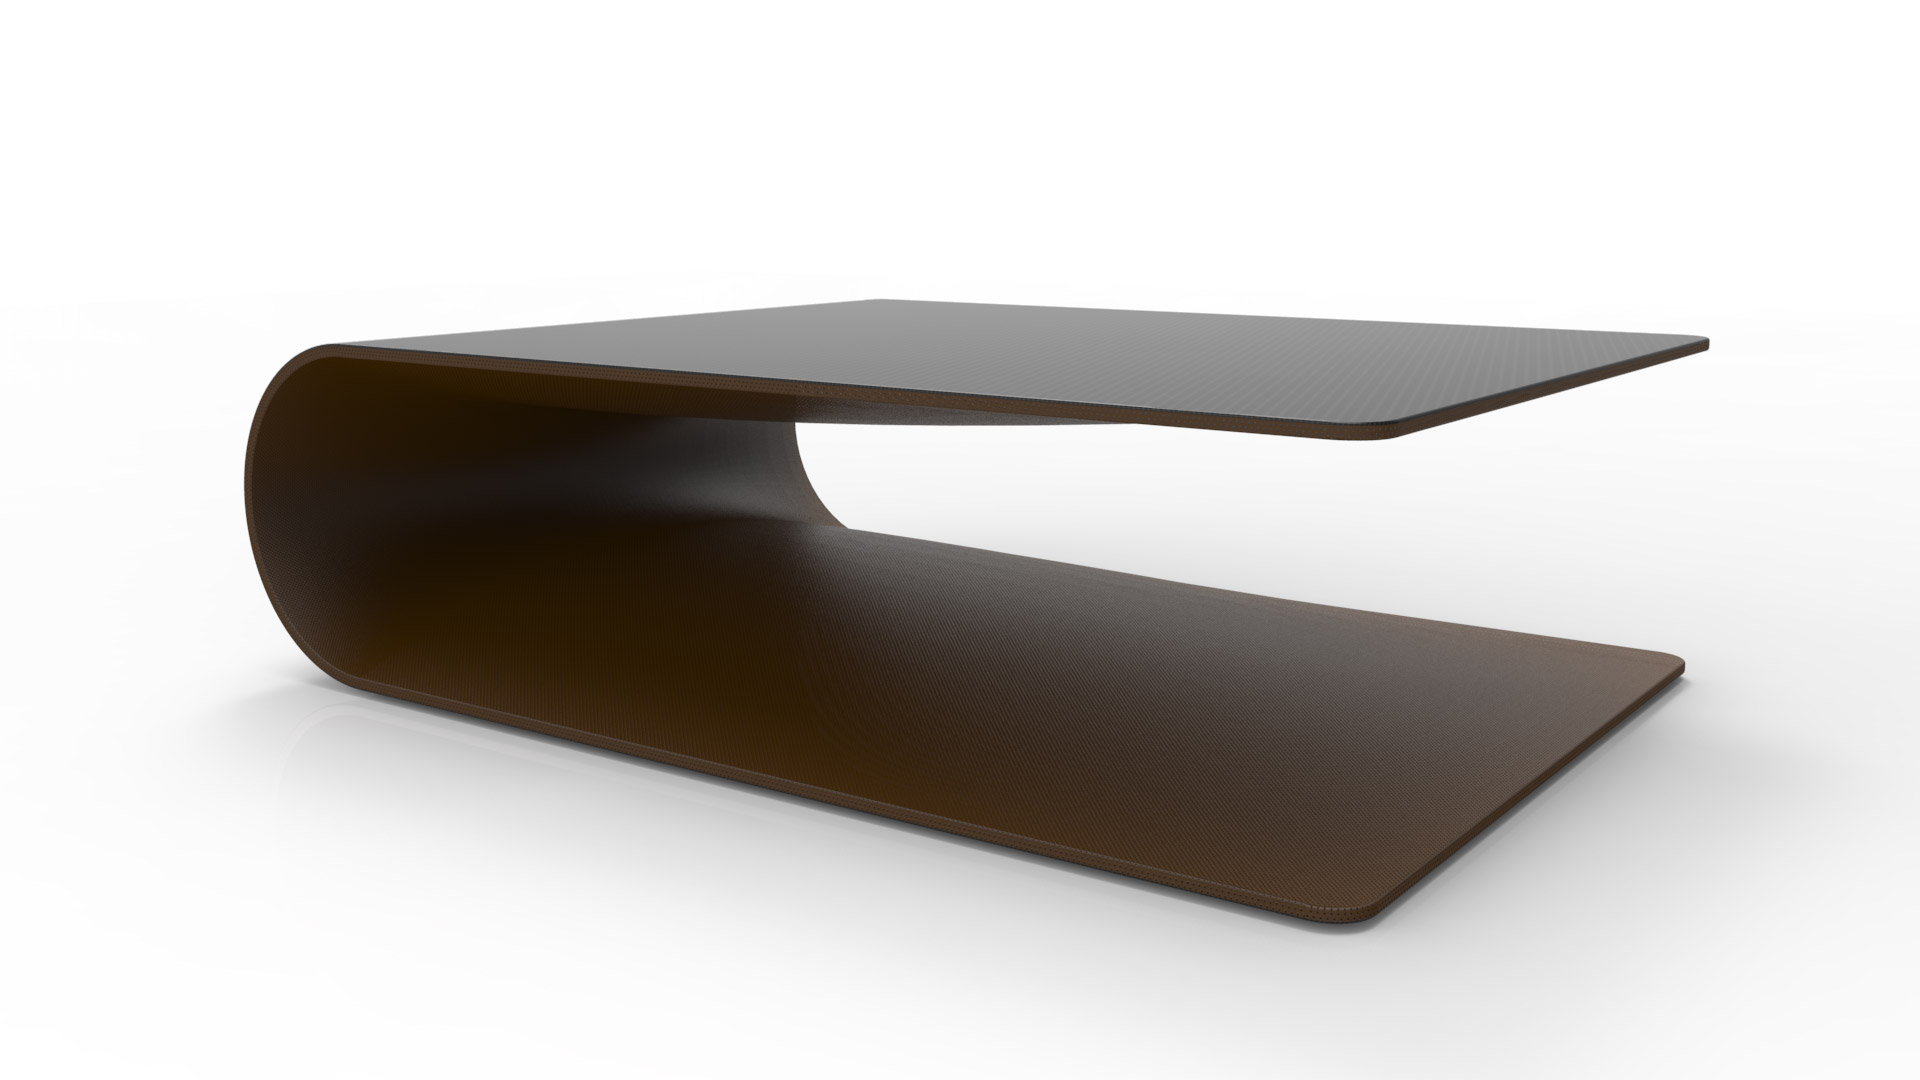 Wonderful Low Table Or Side Table Made Of Carbon Fiber, Kevlar And Structural Foam Awesome Design